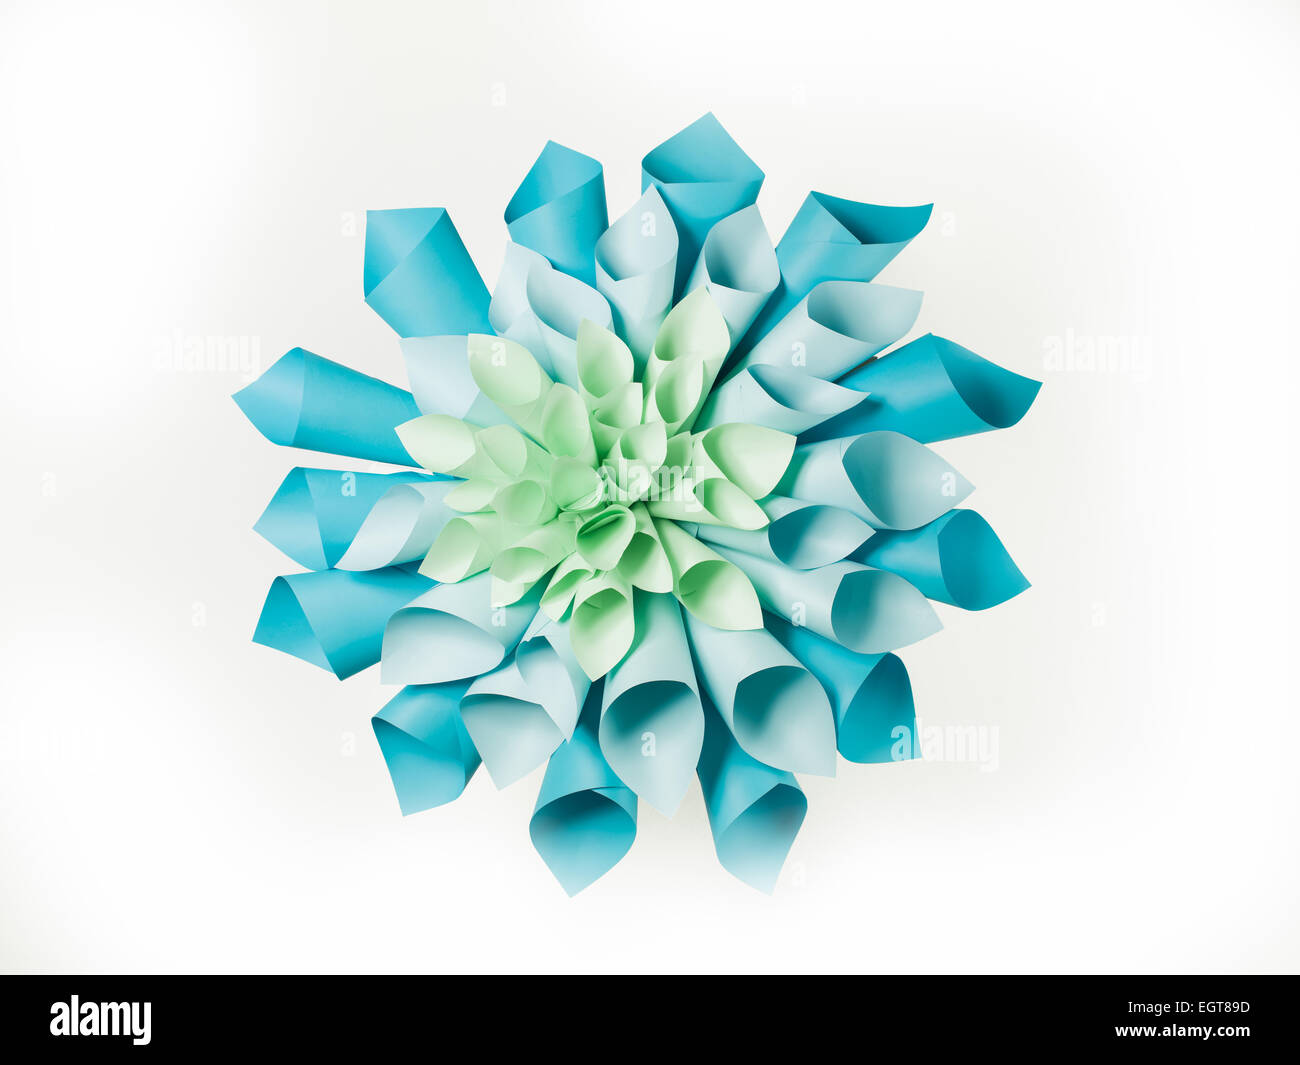 Abstract Image Of Origami Flower Shape Made Out Of Rolled Sheets Of